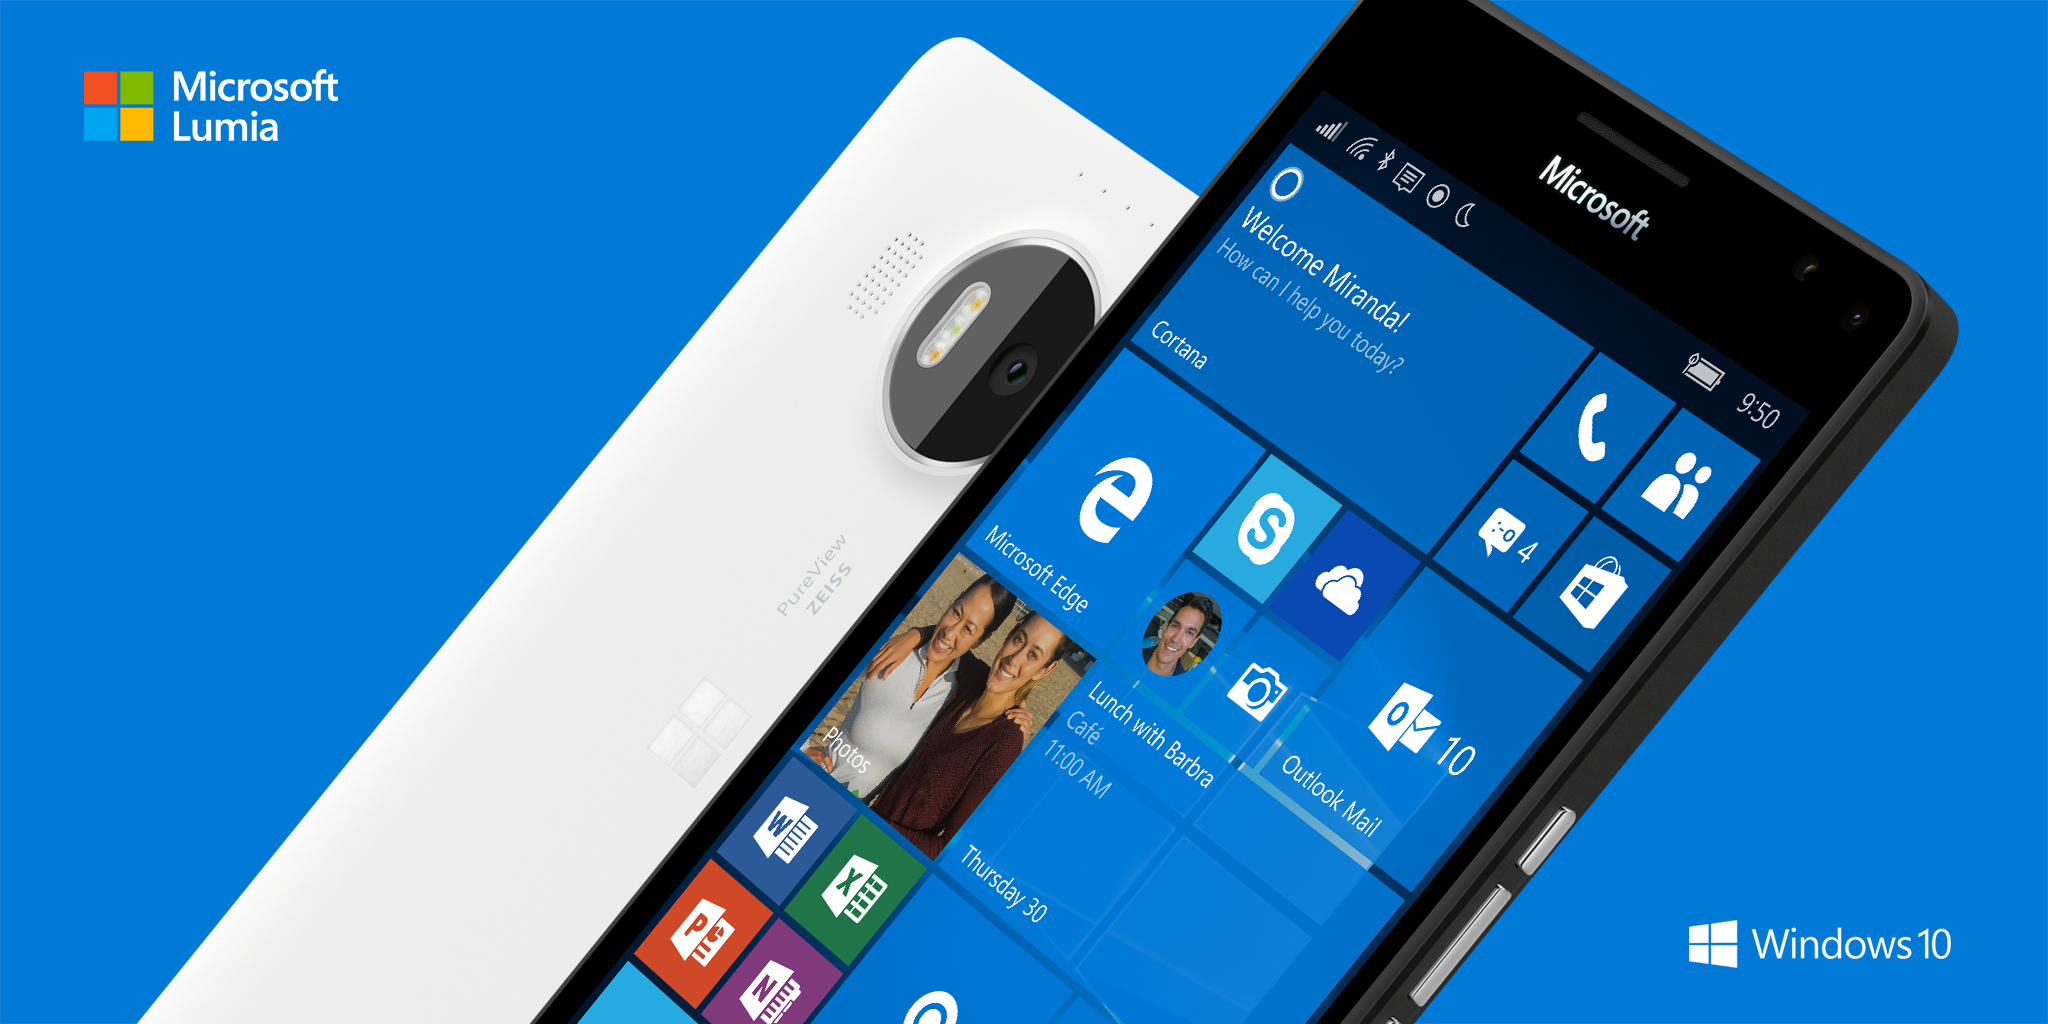 microsoft phone 2014. now that windows phone has failed at its original goal, many predict microsoft would drop it and move on. but why they? 2014